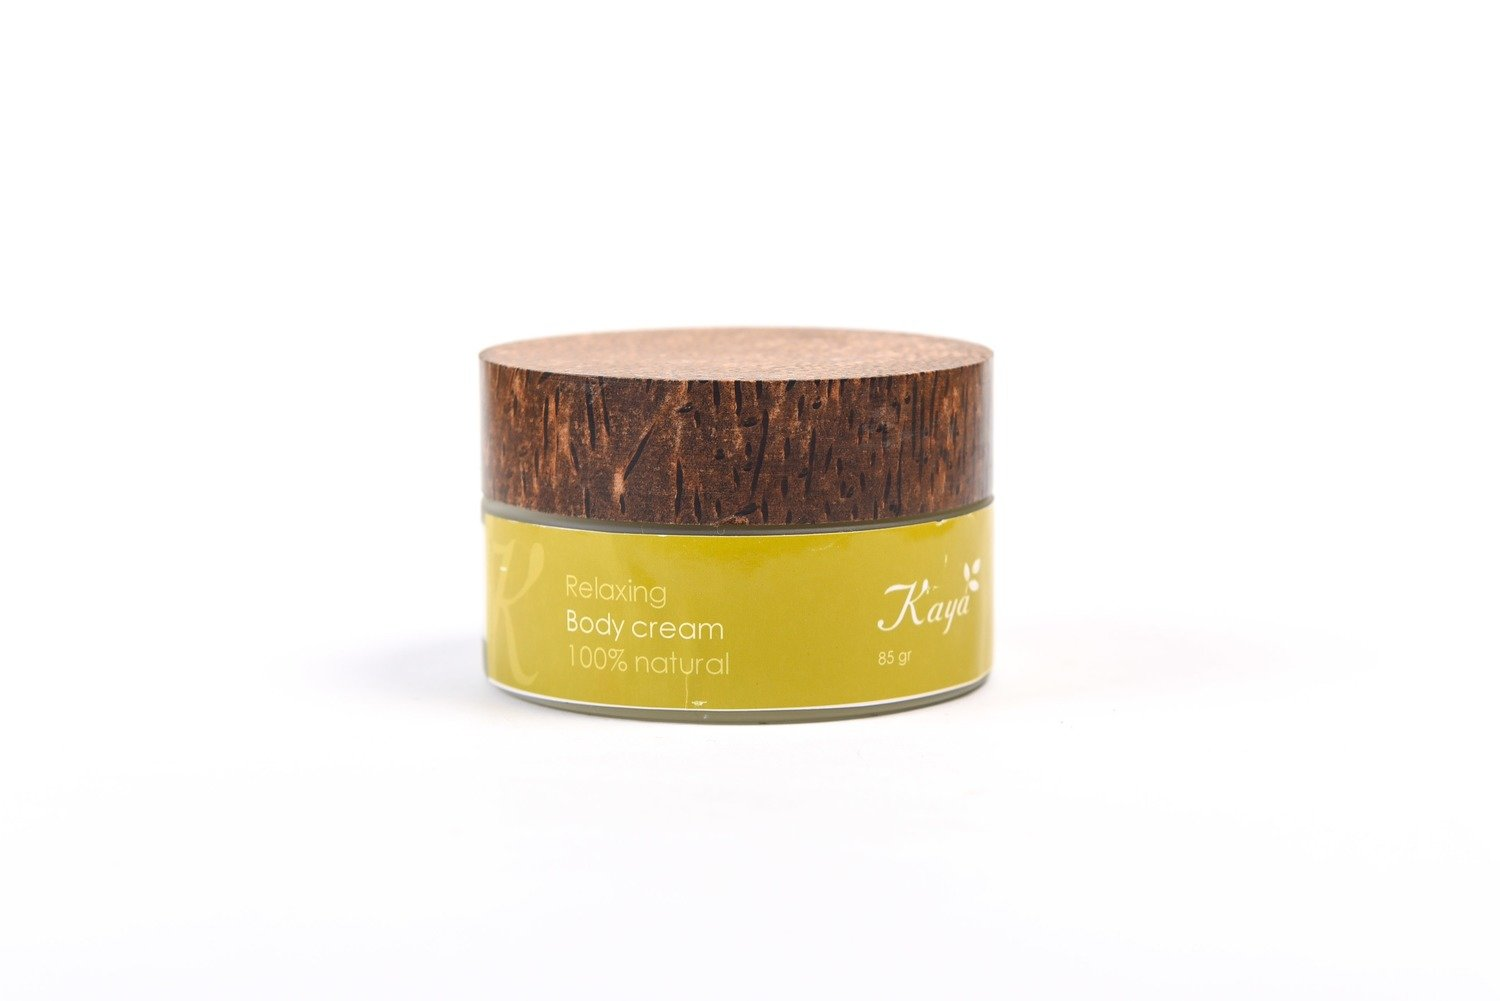 Relaxing Body Cream, 100 % Natural